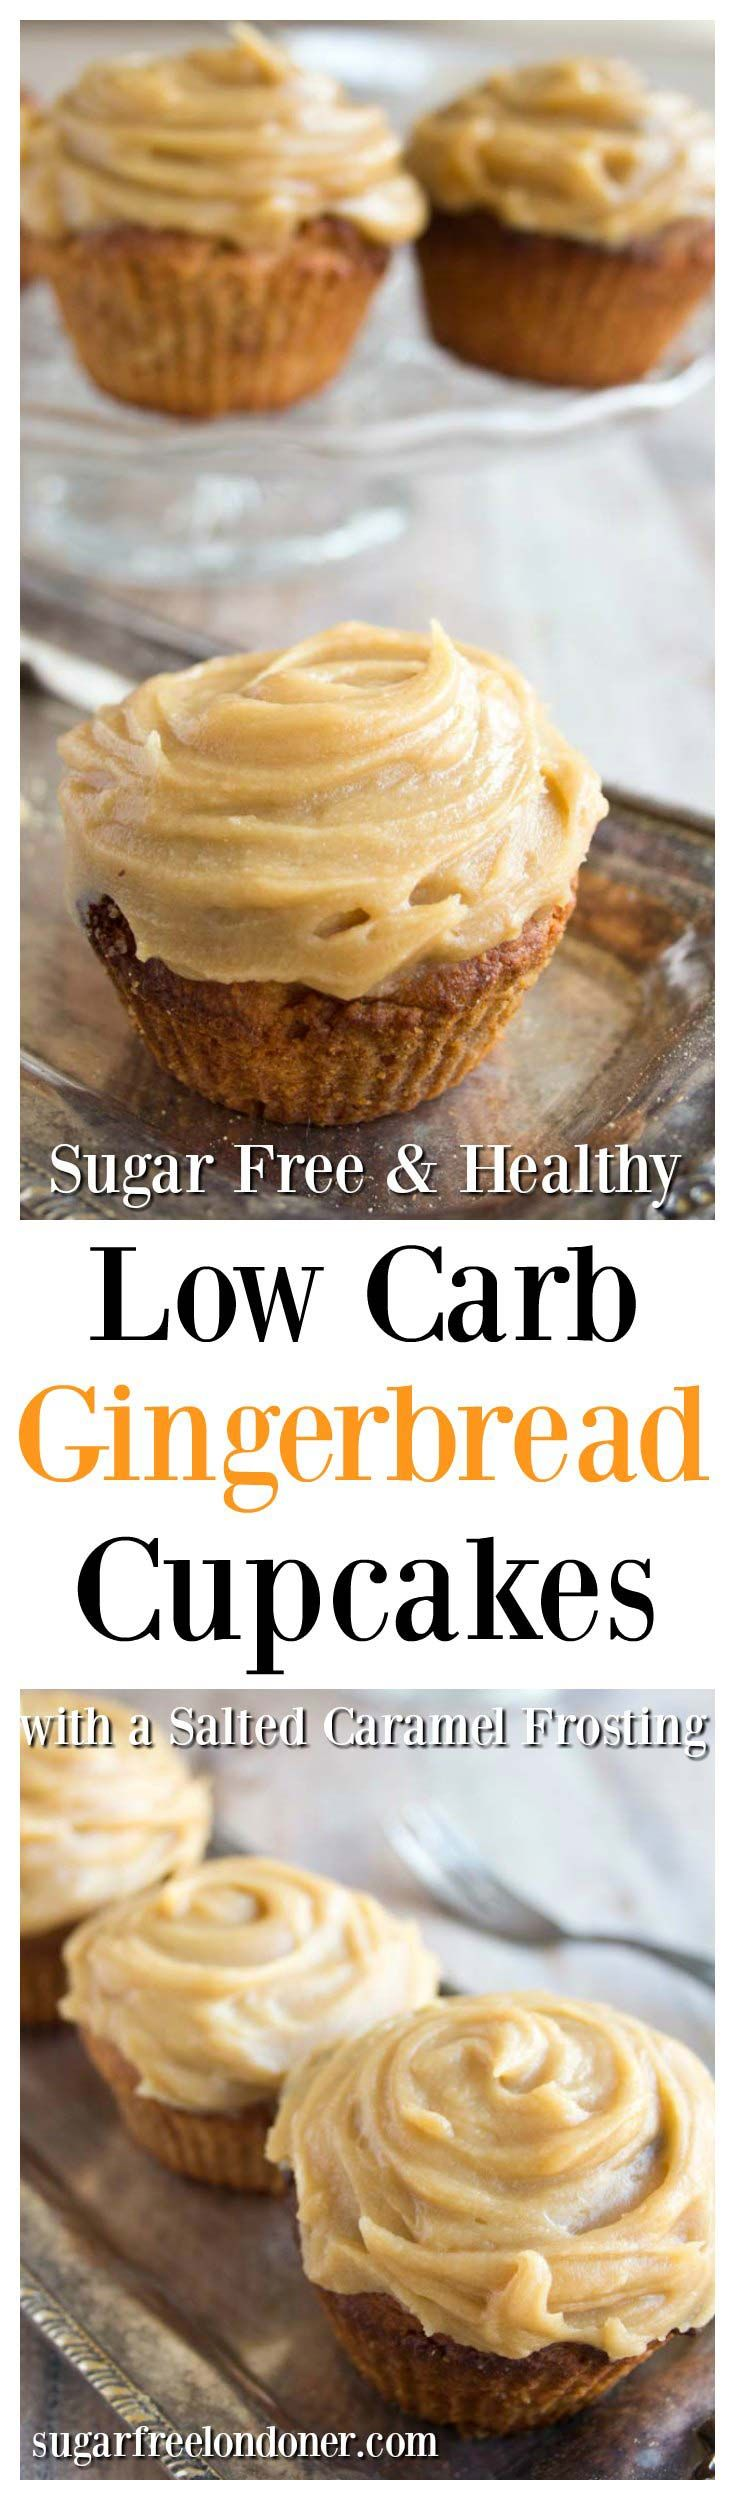 Low carb gingerbread cupcakes with a sugar-free salted caramel frosting - a finger-licking-good treat for everyone following a sugar free, gluten free and low carb diet. Suitable for diabetics.